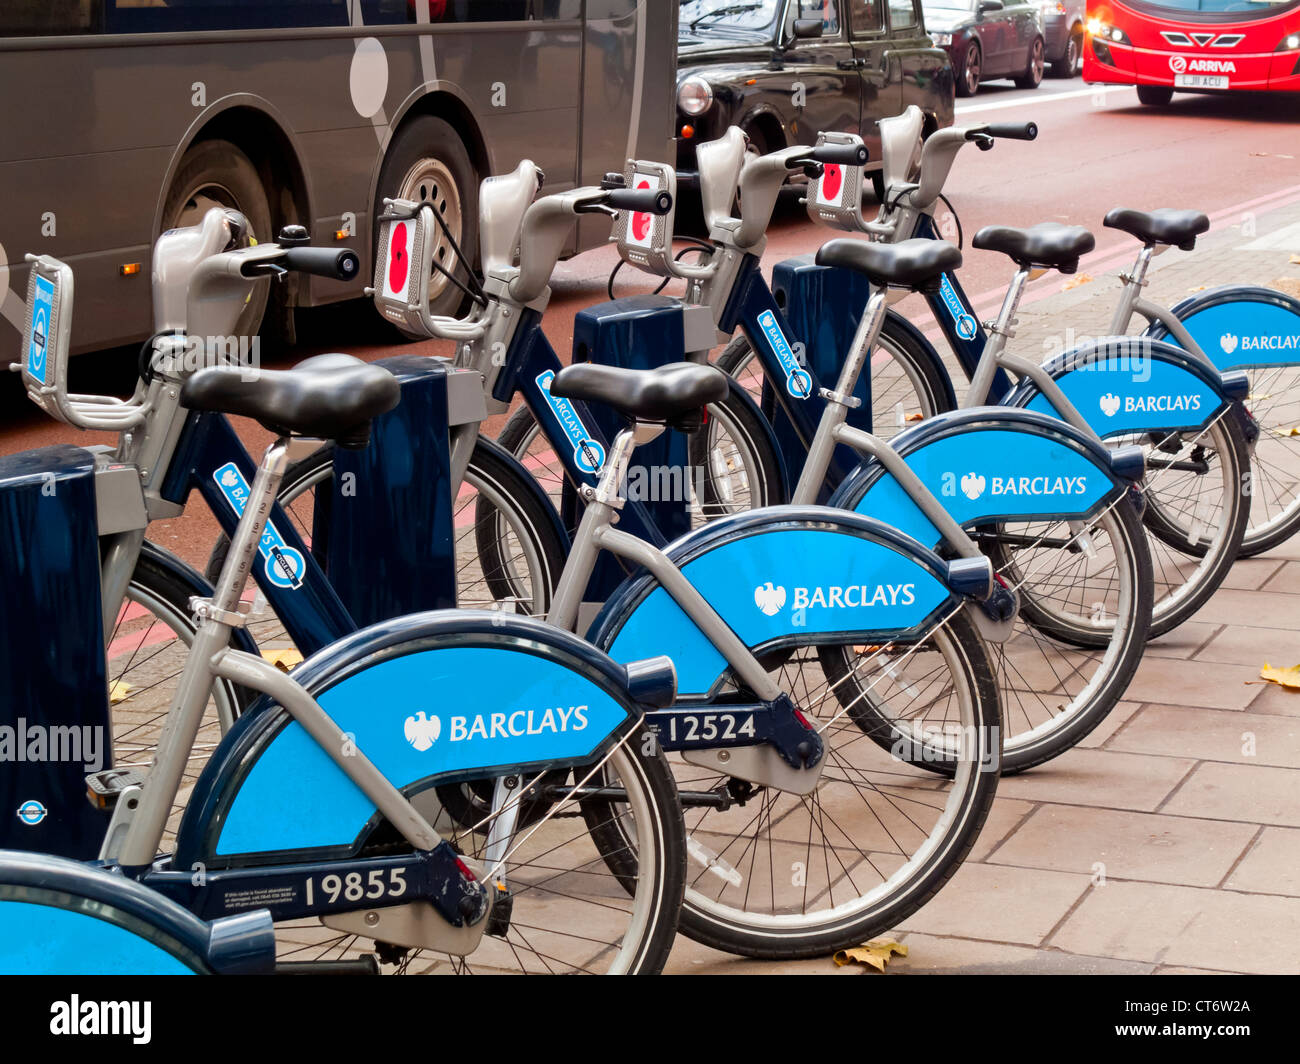 Barclays Cycle Hire BCH bicycle share bikes parked in central London UK also known as Boris Bikes after the mayor - Stock Image